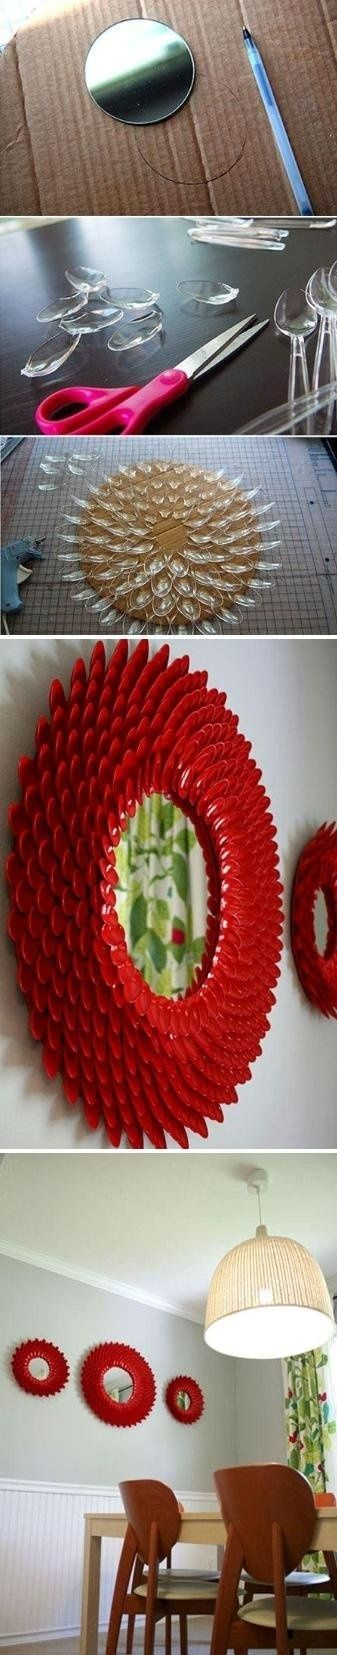 Make a Mirror from Plastic Spoon - Make a Chrysanthemum Mirror from Plastic Spoon Pinterest DIY ideas